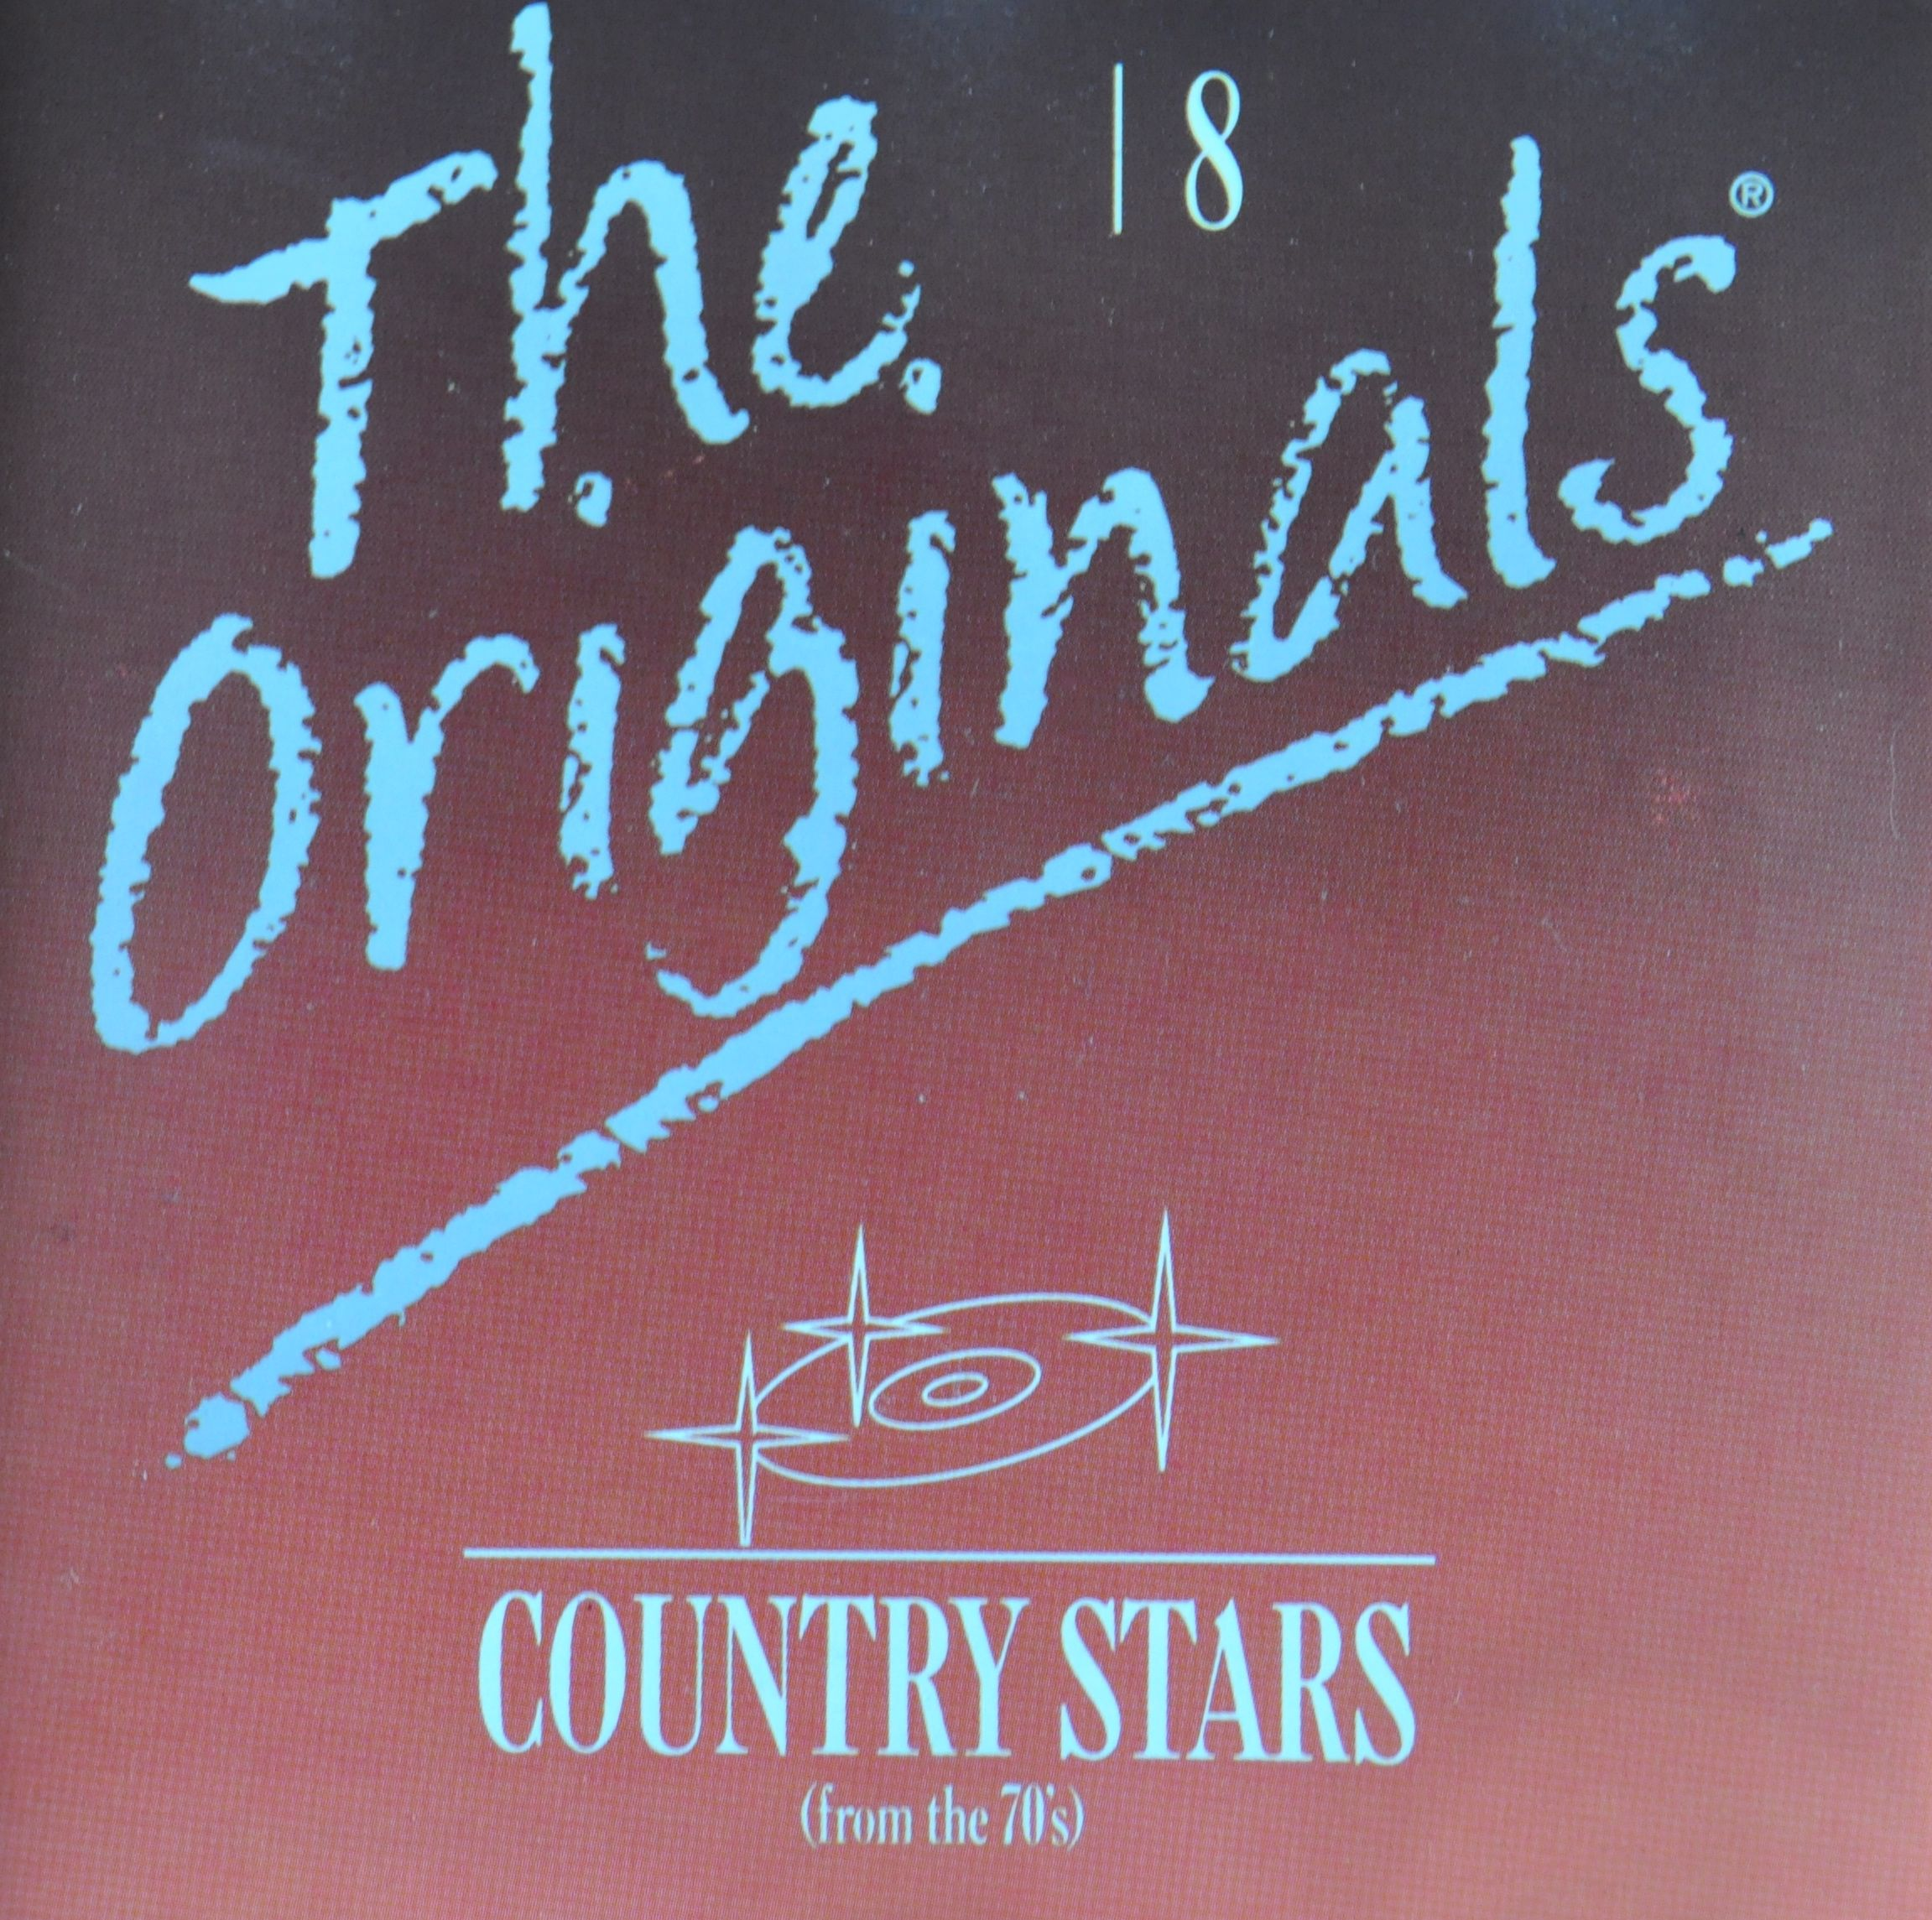 jaquettes2/The-Originals_08_Country-Stars-from-the-70s.jpg